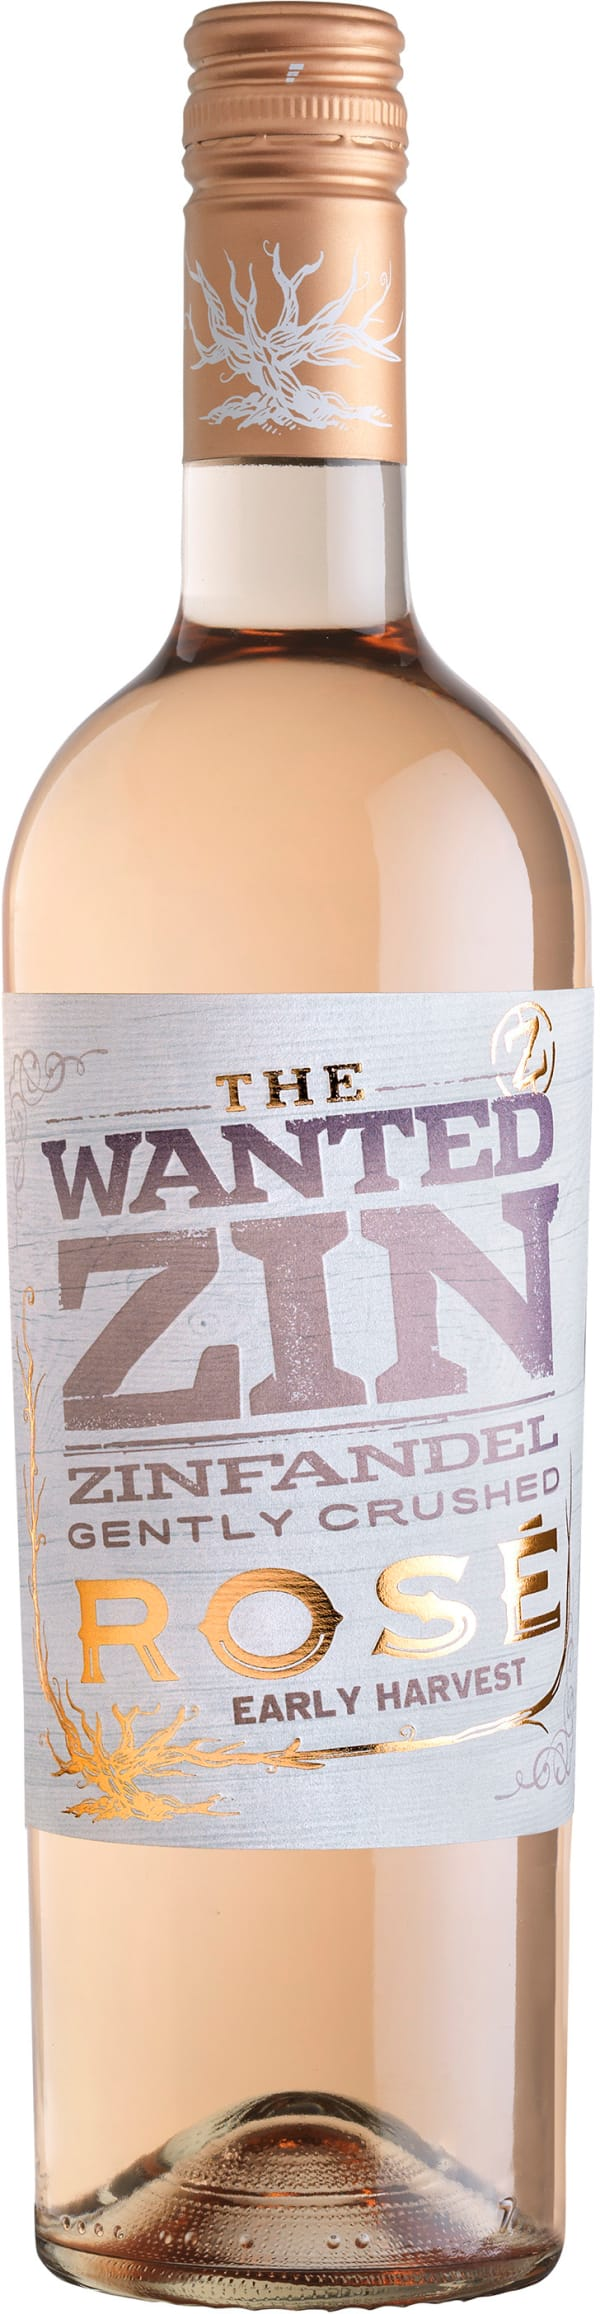 The Wanted Zin Rosé  2018